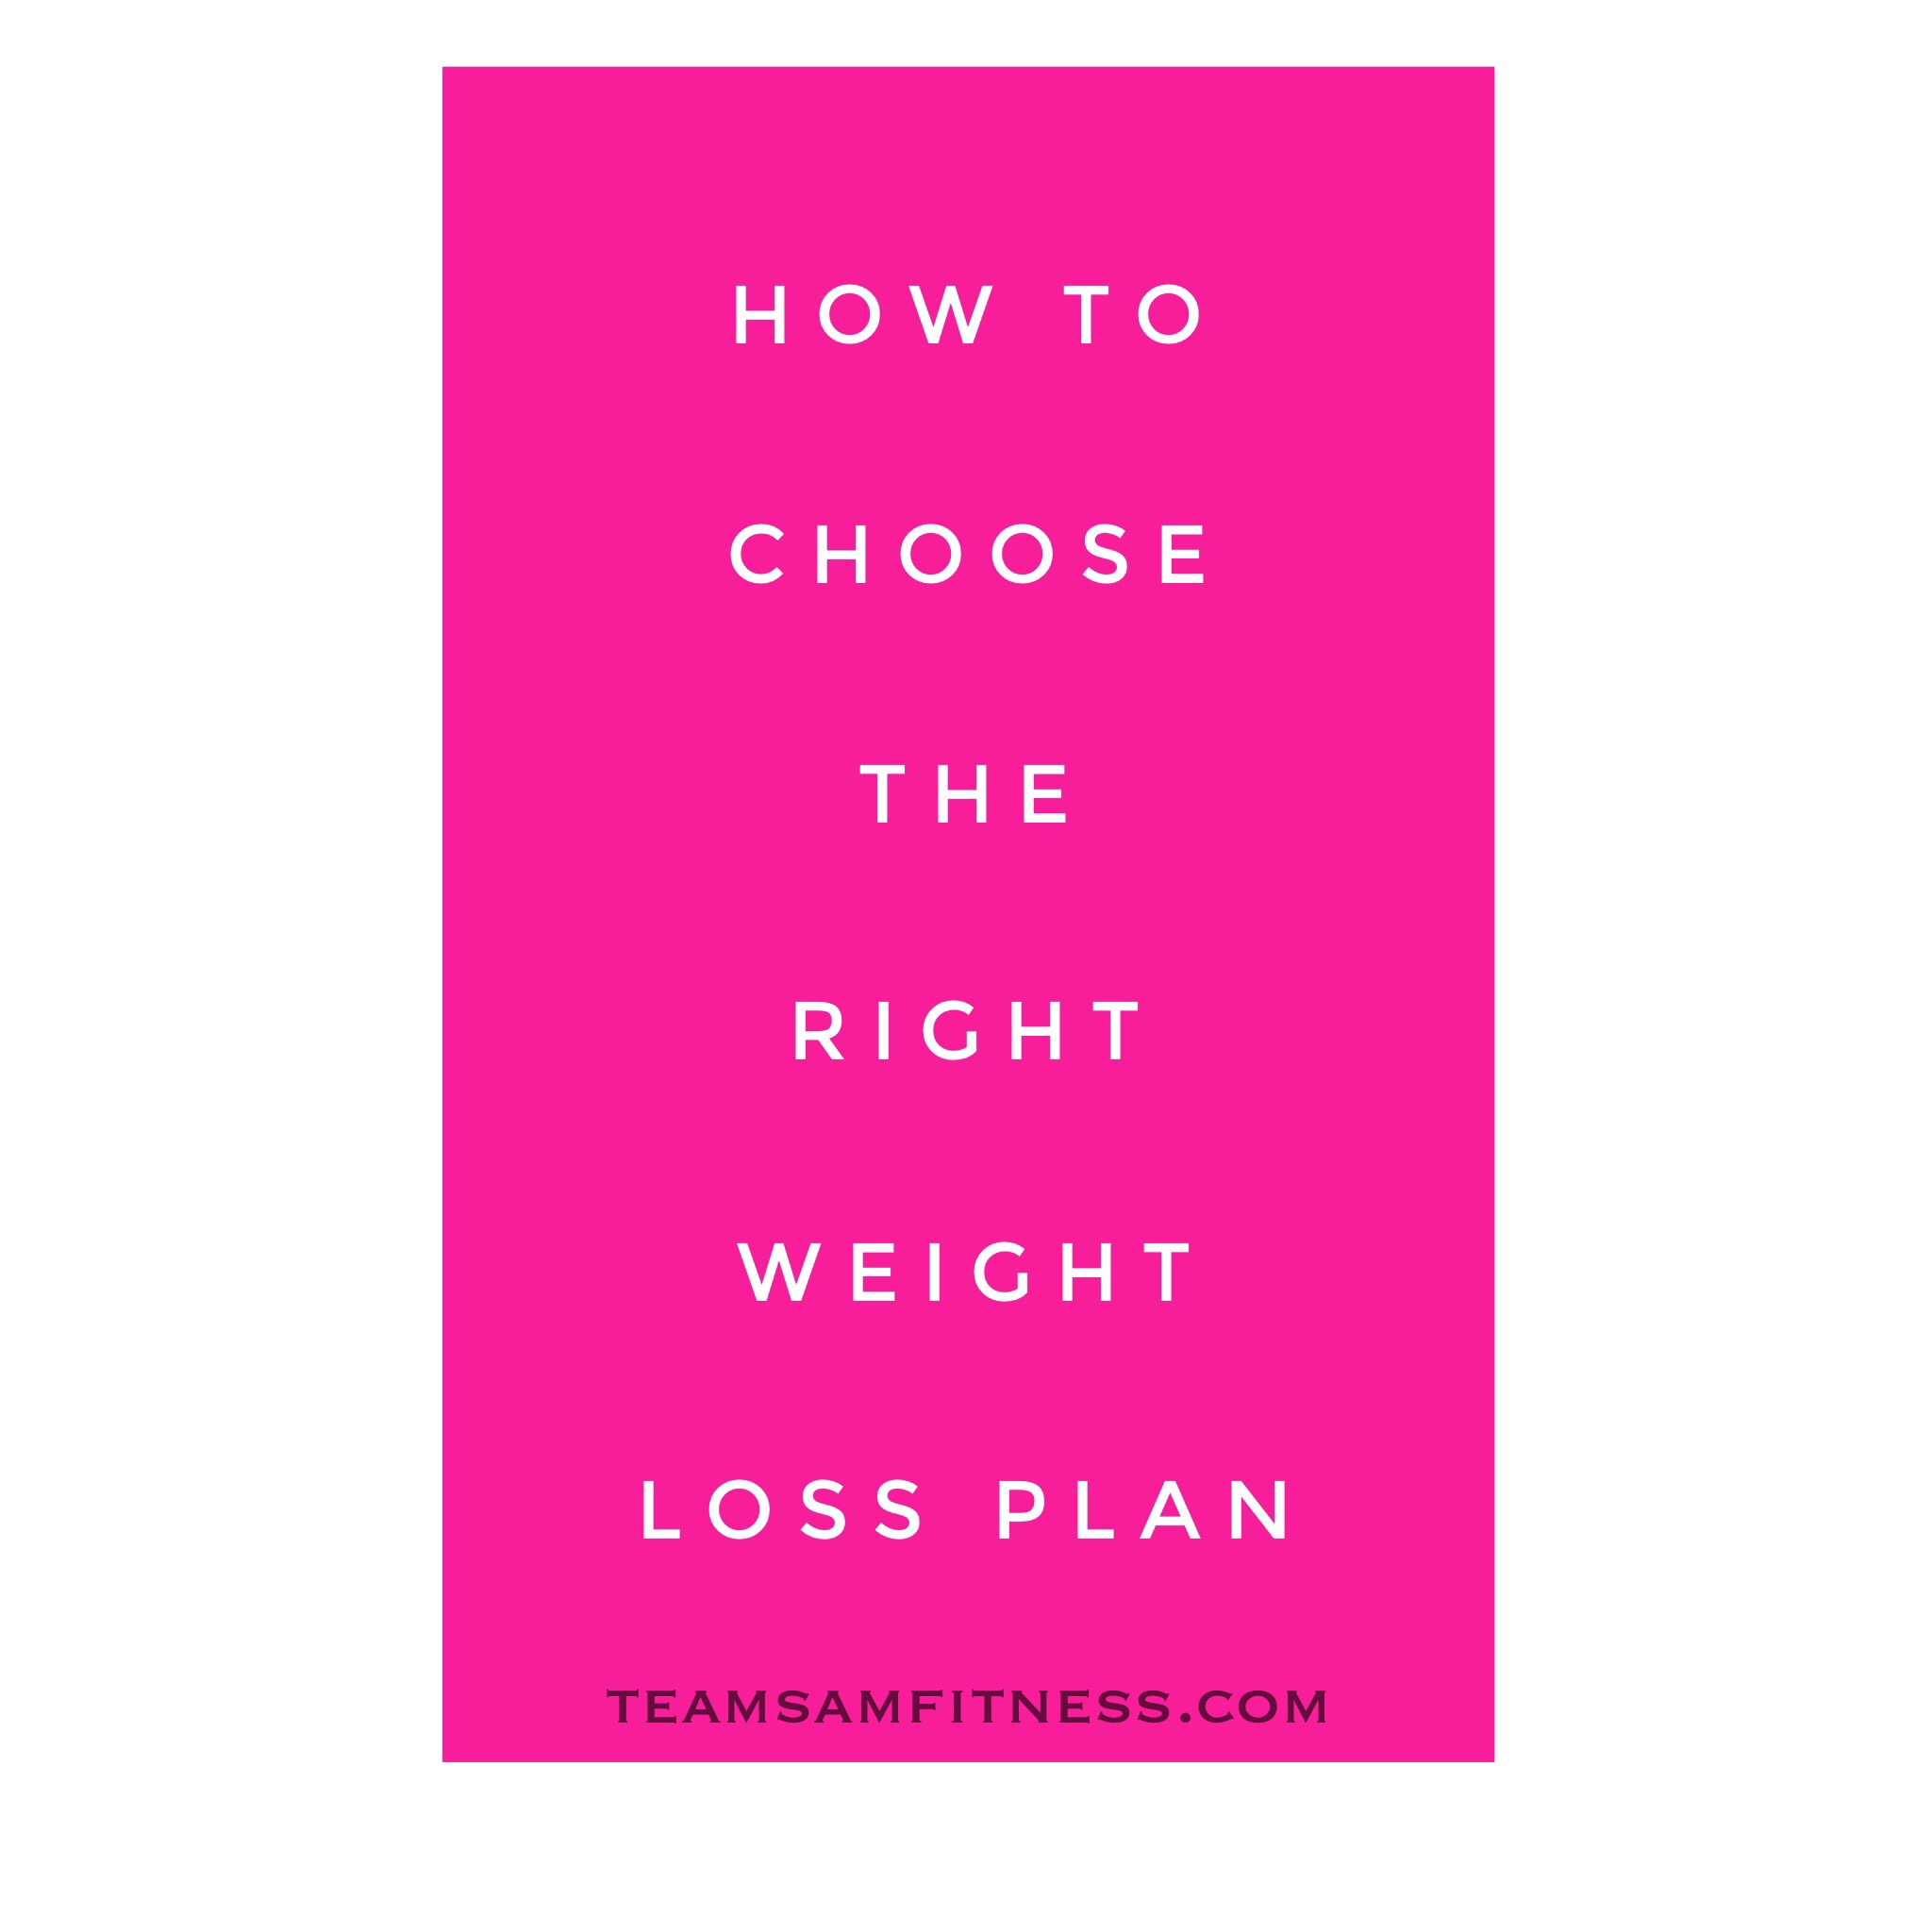 How to Choose the Right Weight Loss Plan